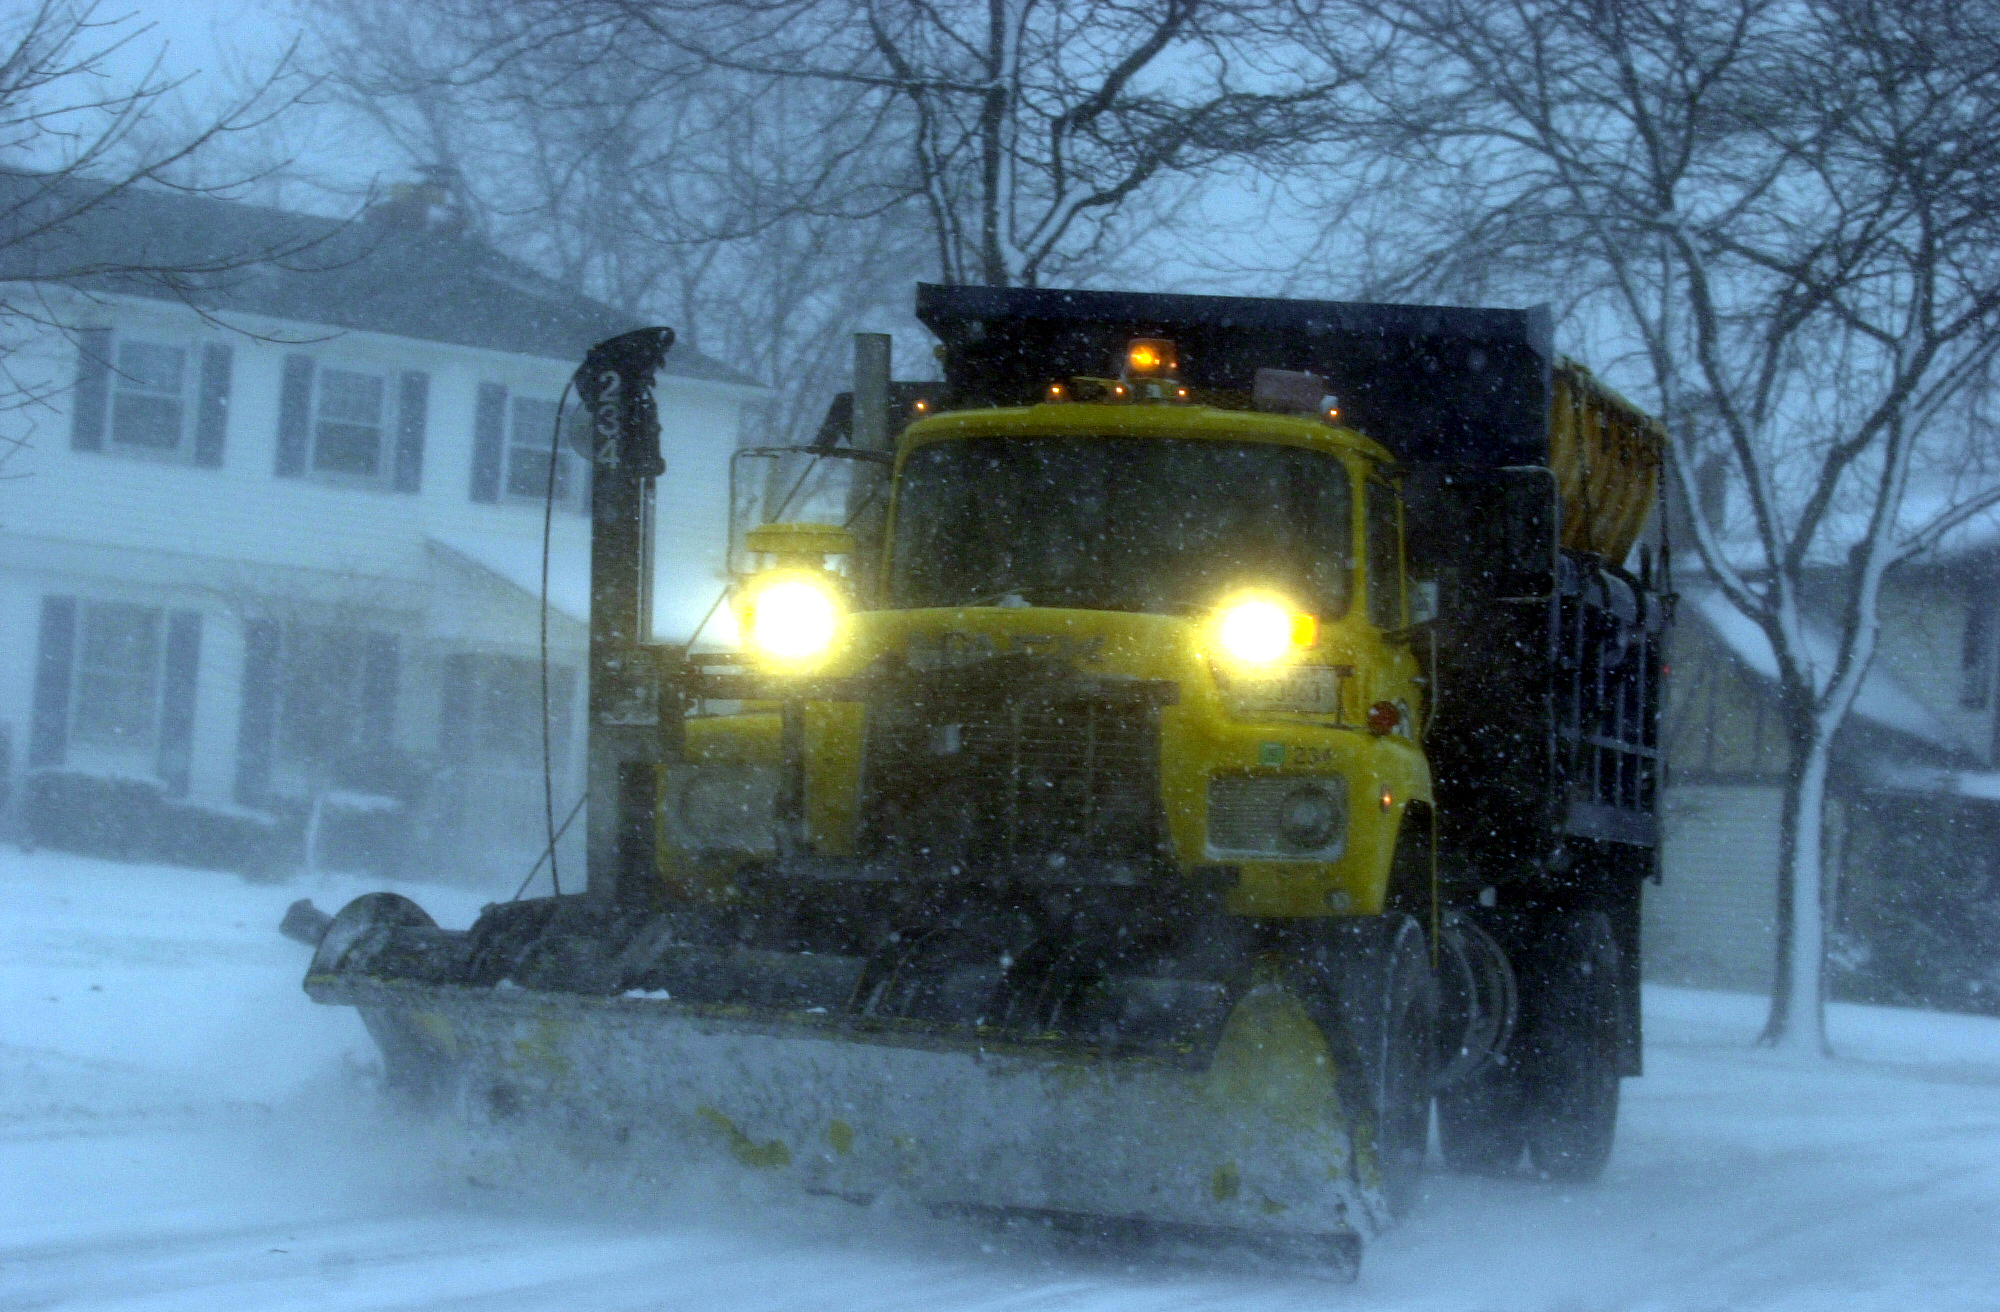 A town of Amherst plow truck at work on Willow Green Drive in Amherst. (News file photo)